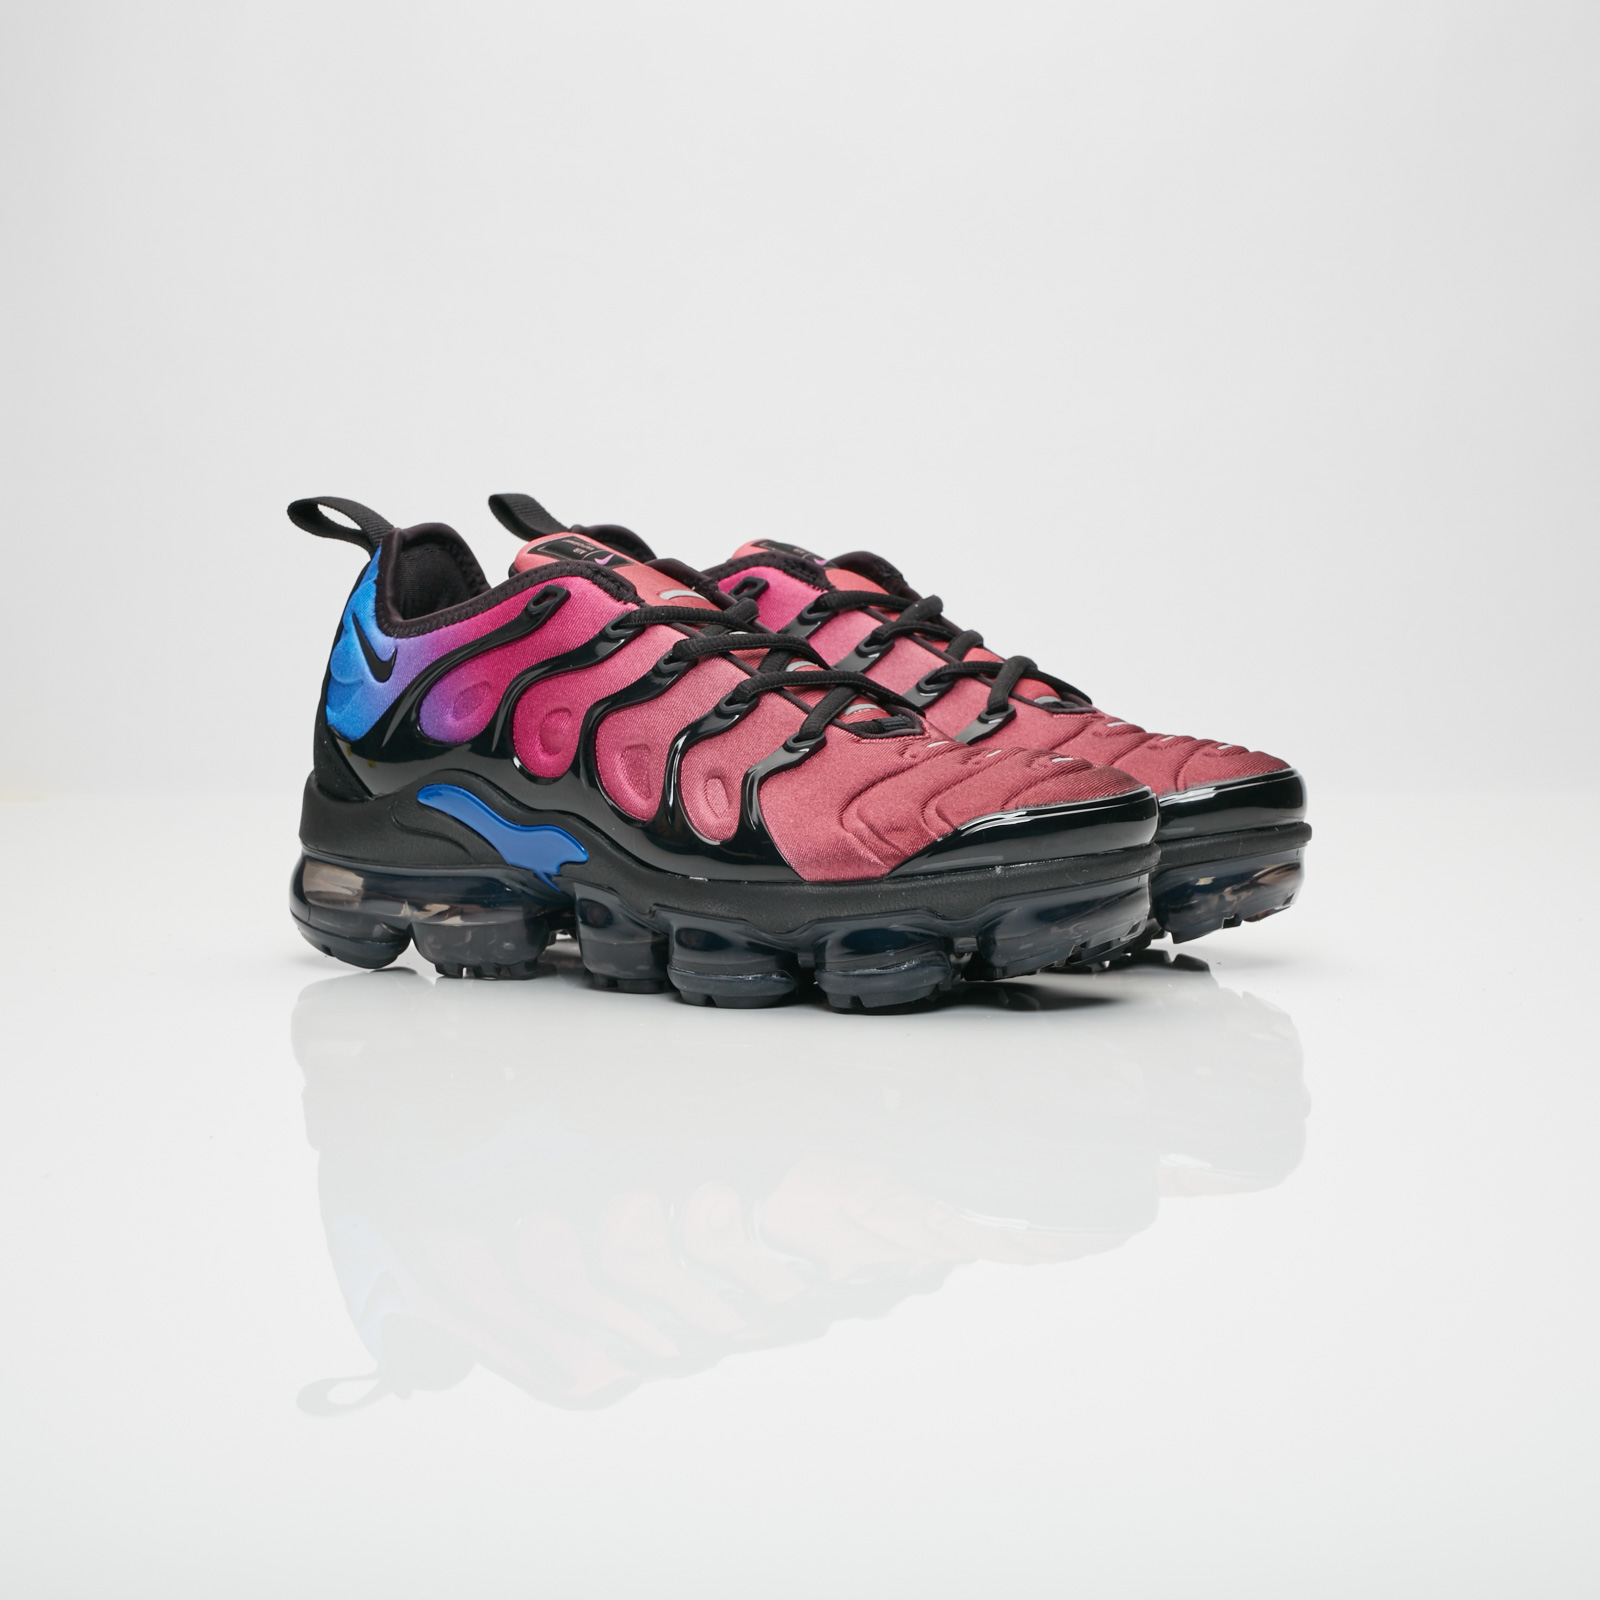 huge selection of 4b0fa 9d39b Nike Sportswear Wmns Air Vapormax Plus